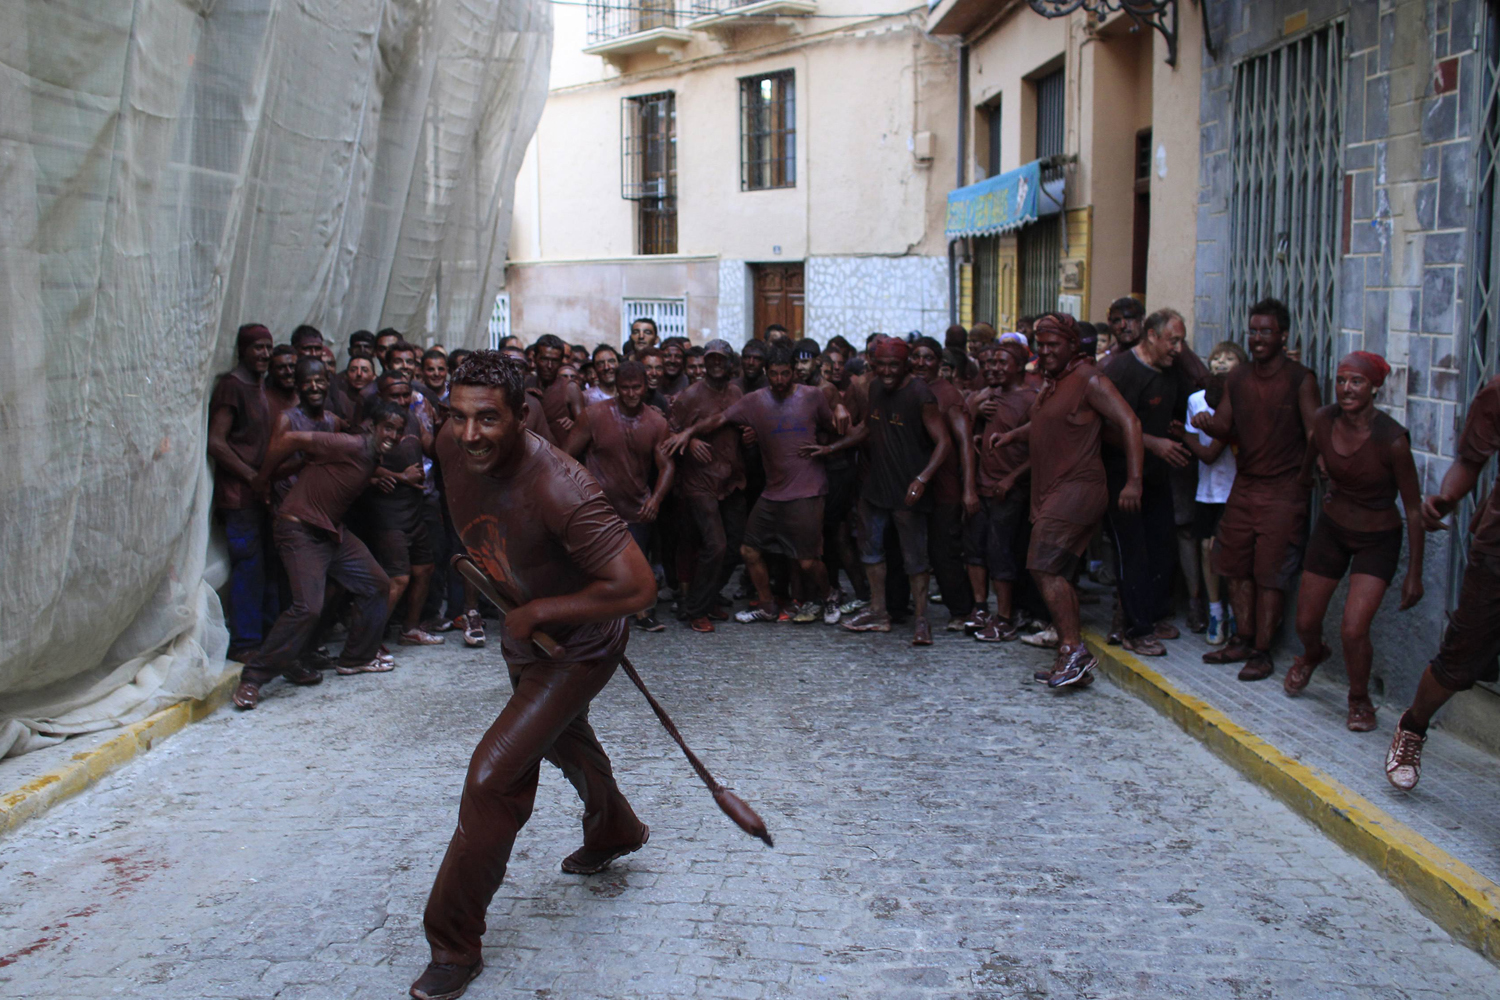 September 9, 2011. Revellers covered in paint take part in the annual  Cascamorras  festival in Guadix, Spain. The festival was inspired by a dispute between the villages of Baza and Guadix over the possession of the image of the Virgin of Piedad. The Cascamorras refers to representatives from Guadix, who are sent to the town of Baza to recover the statue. As the Cascamorras have to stay perfectly clean to gain possession of the statue, Baza residents attempt to make them as 'dirty' as possible.